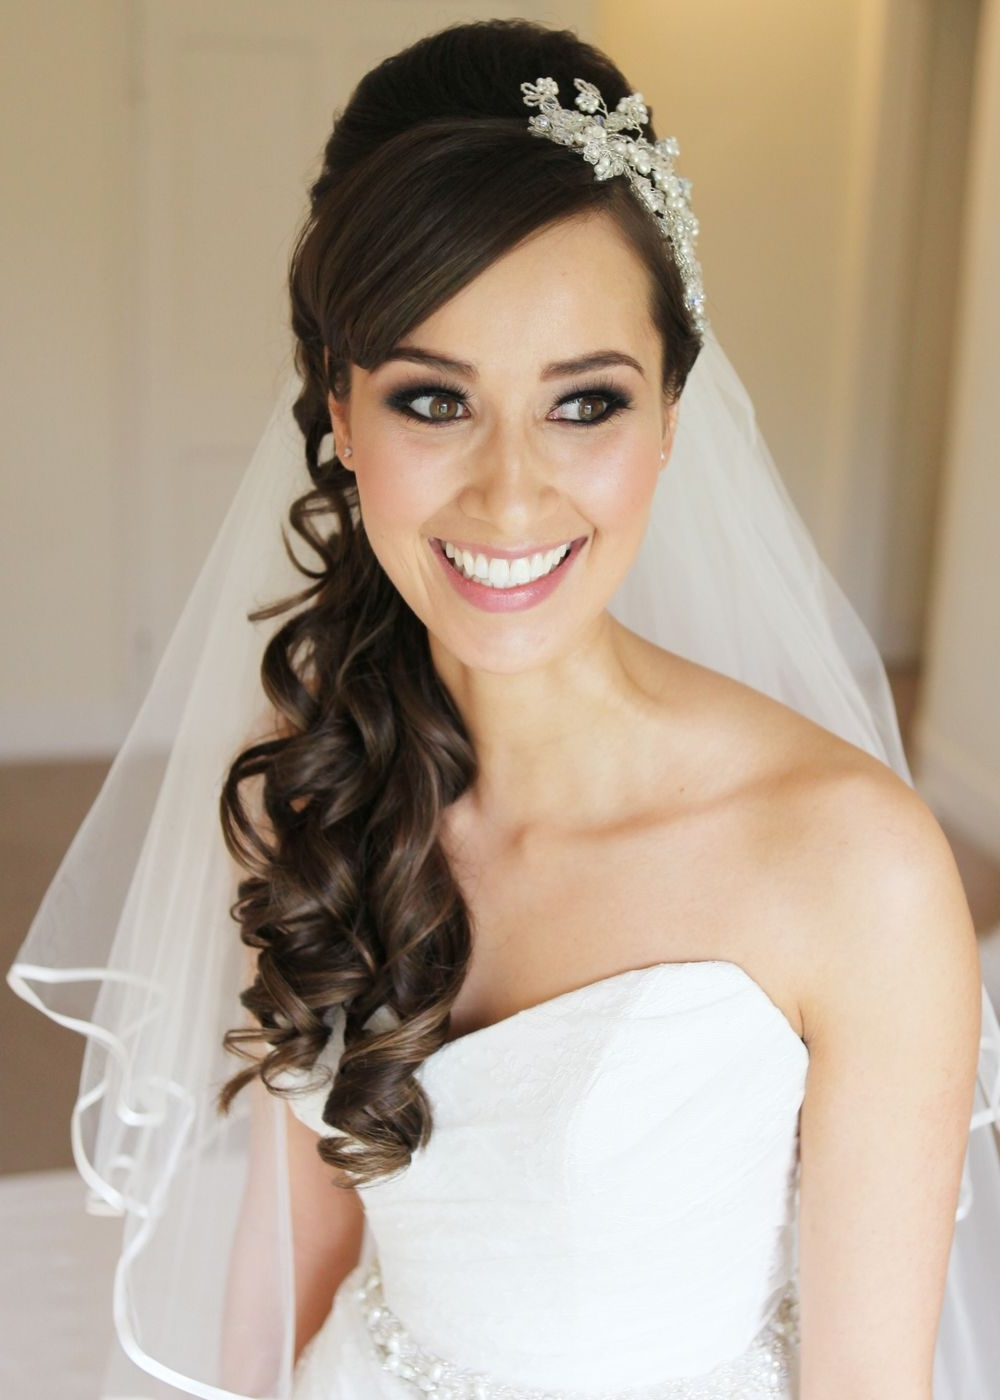 15 Fabulous Half Up Half Down Wedding Hairstyles (View 1 of 15)